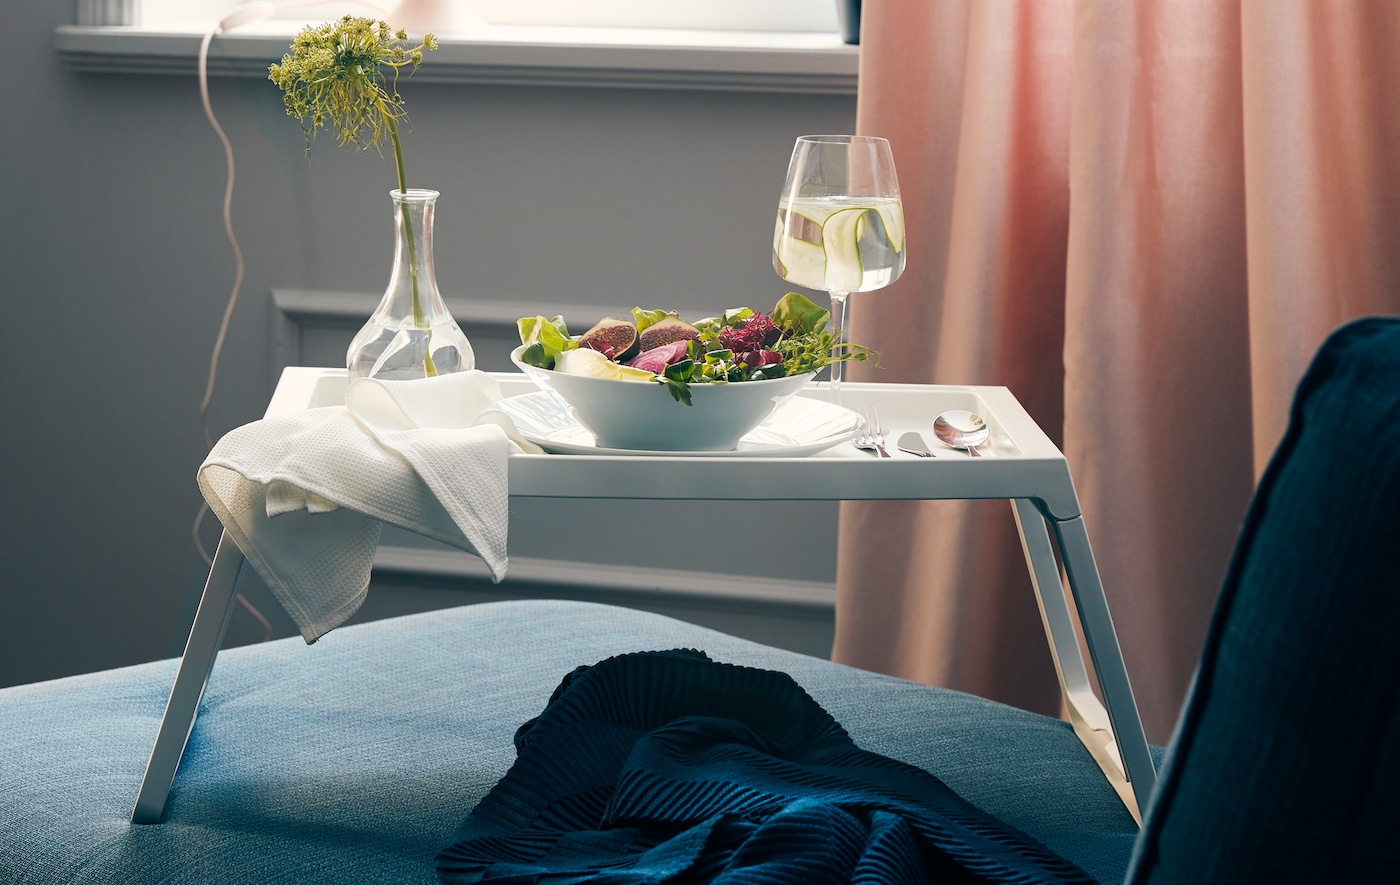 Dinner for one is best served with a good movie. Dine in bed, on the couch or in your favourite armchair with a stable tray.